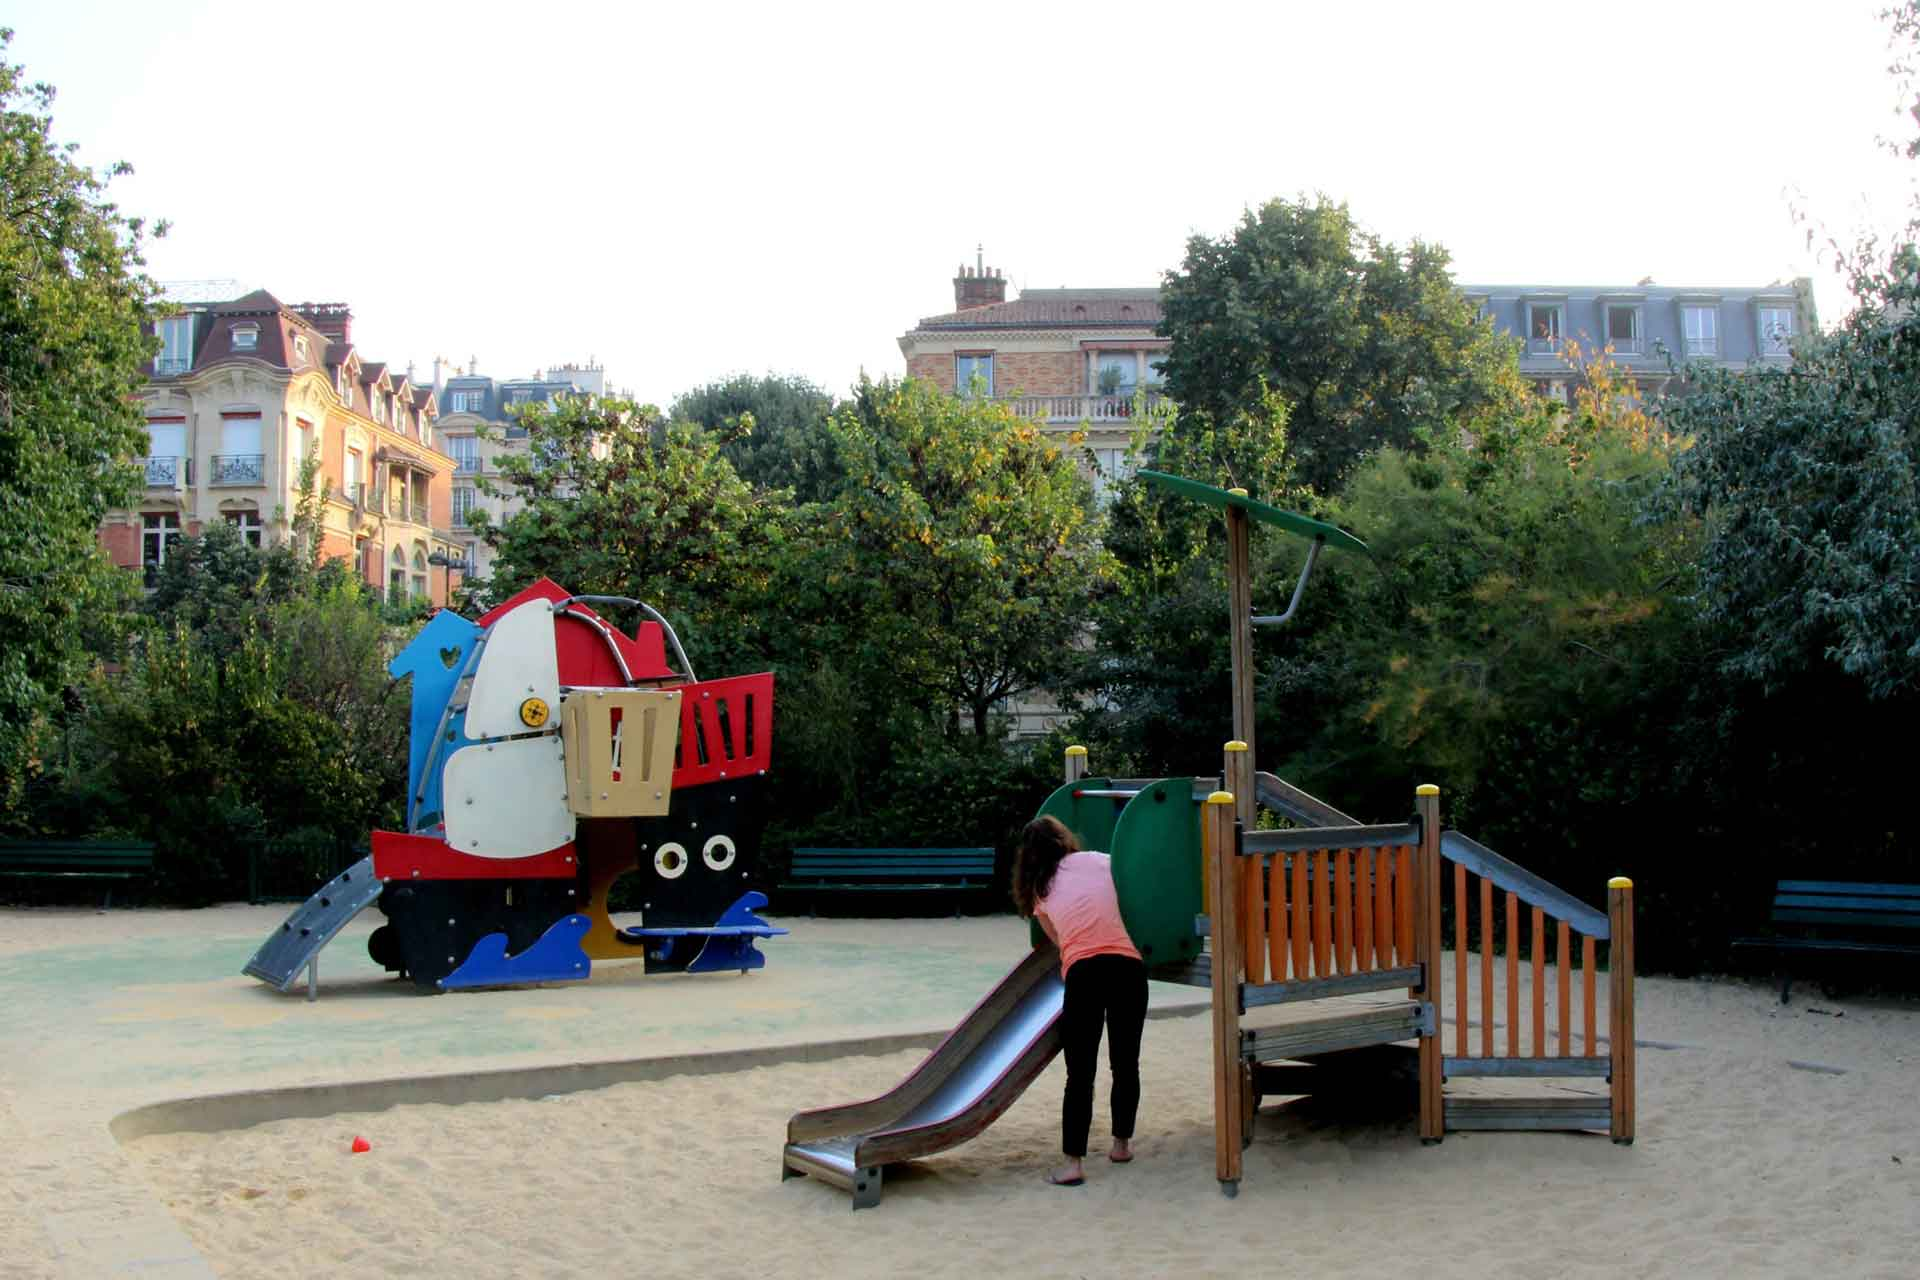 Paris playgrounds with a baby